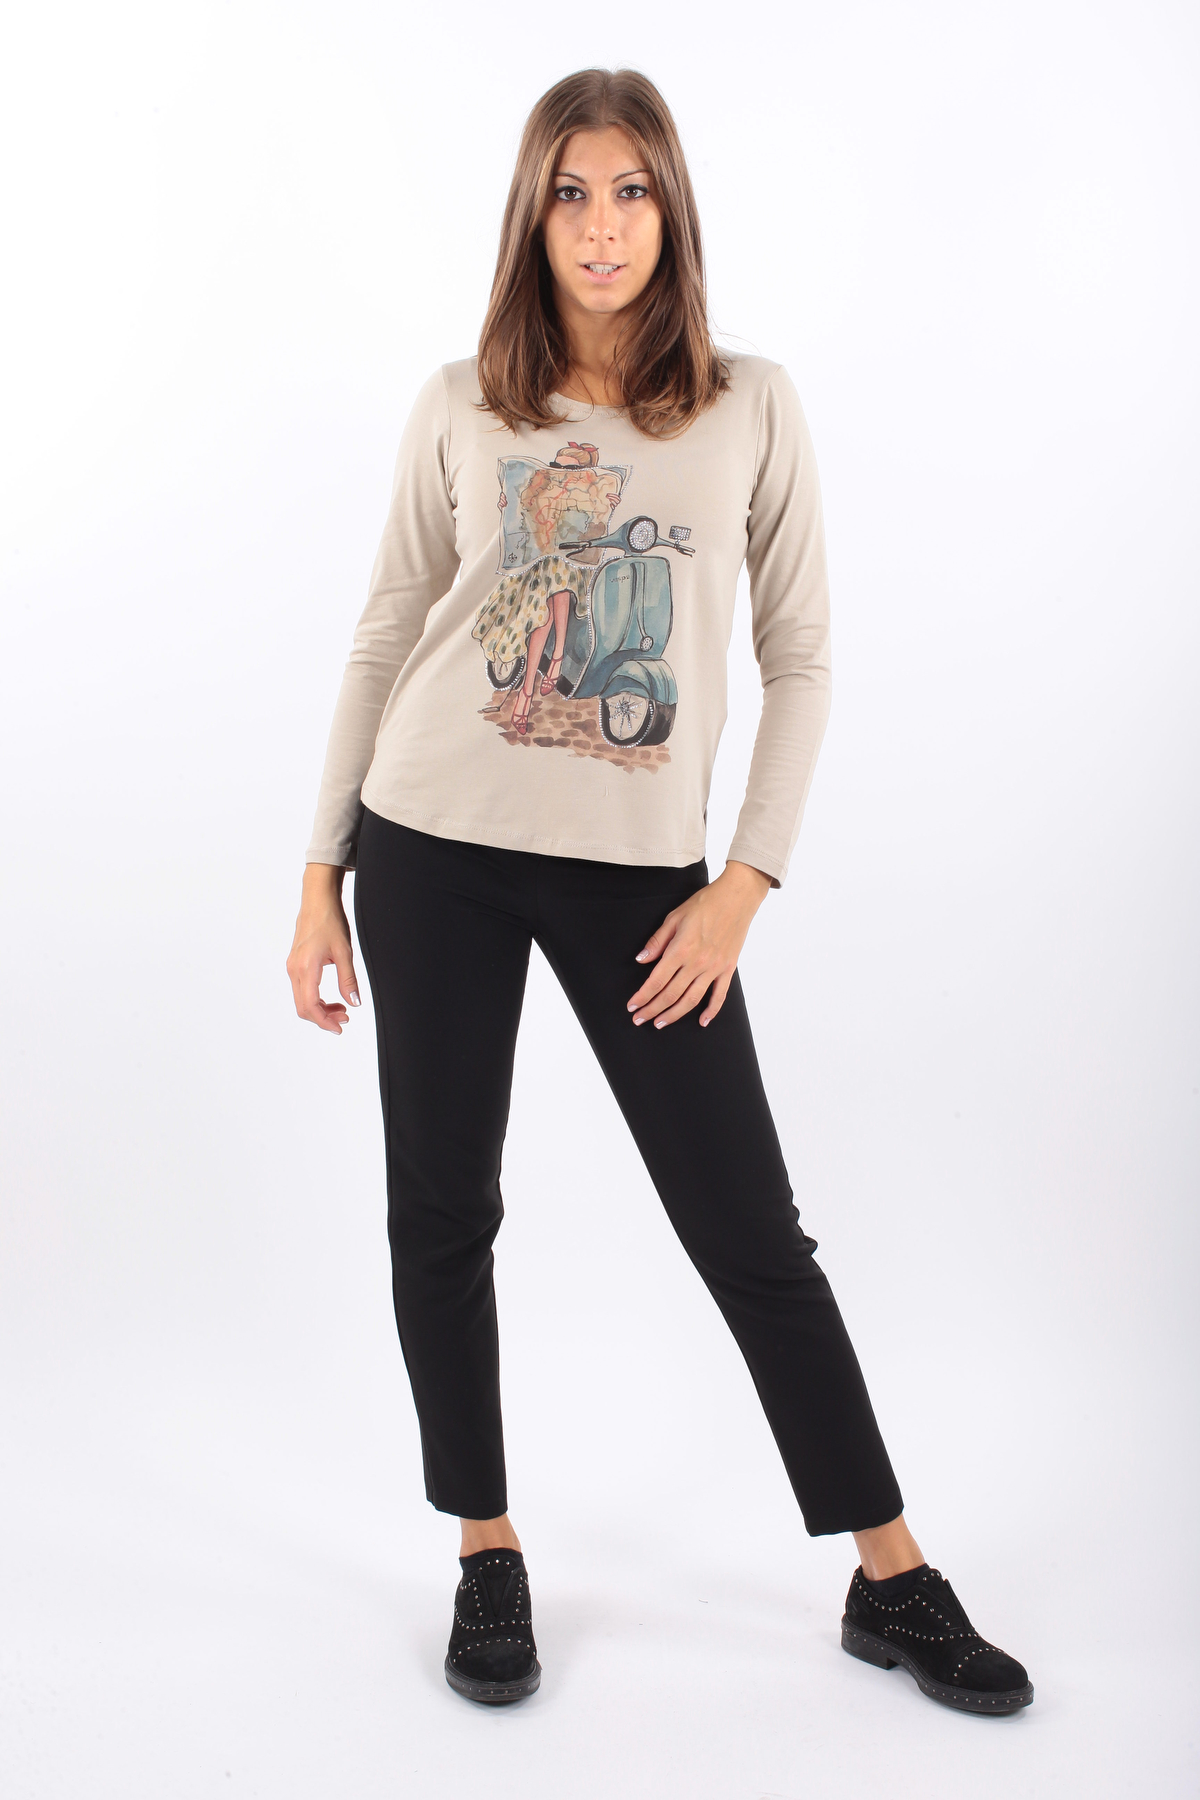 LONG-SLEEVED COTTON T-SHIRT WITH STRASS for women - CAMEL - Paquito Pronto Moda Shop Online